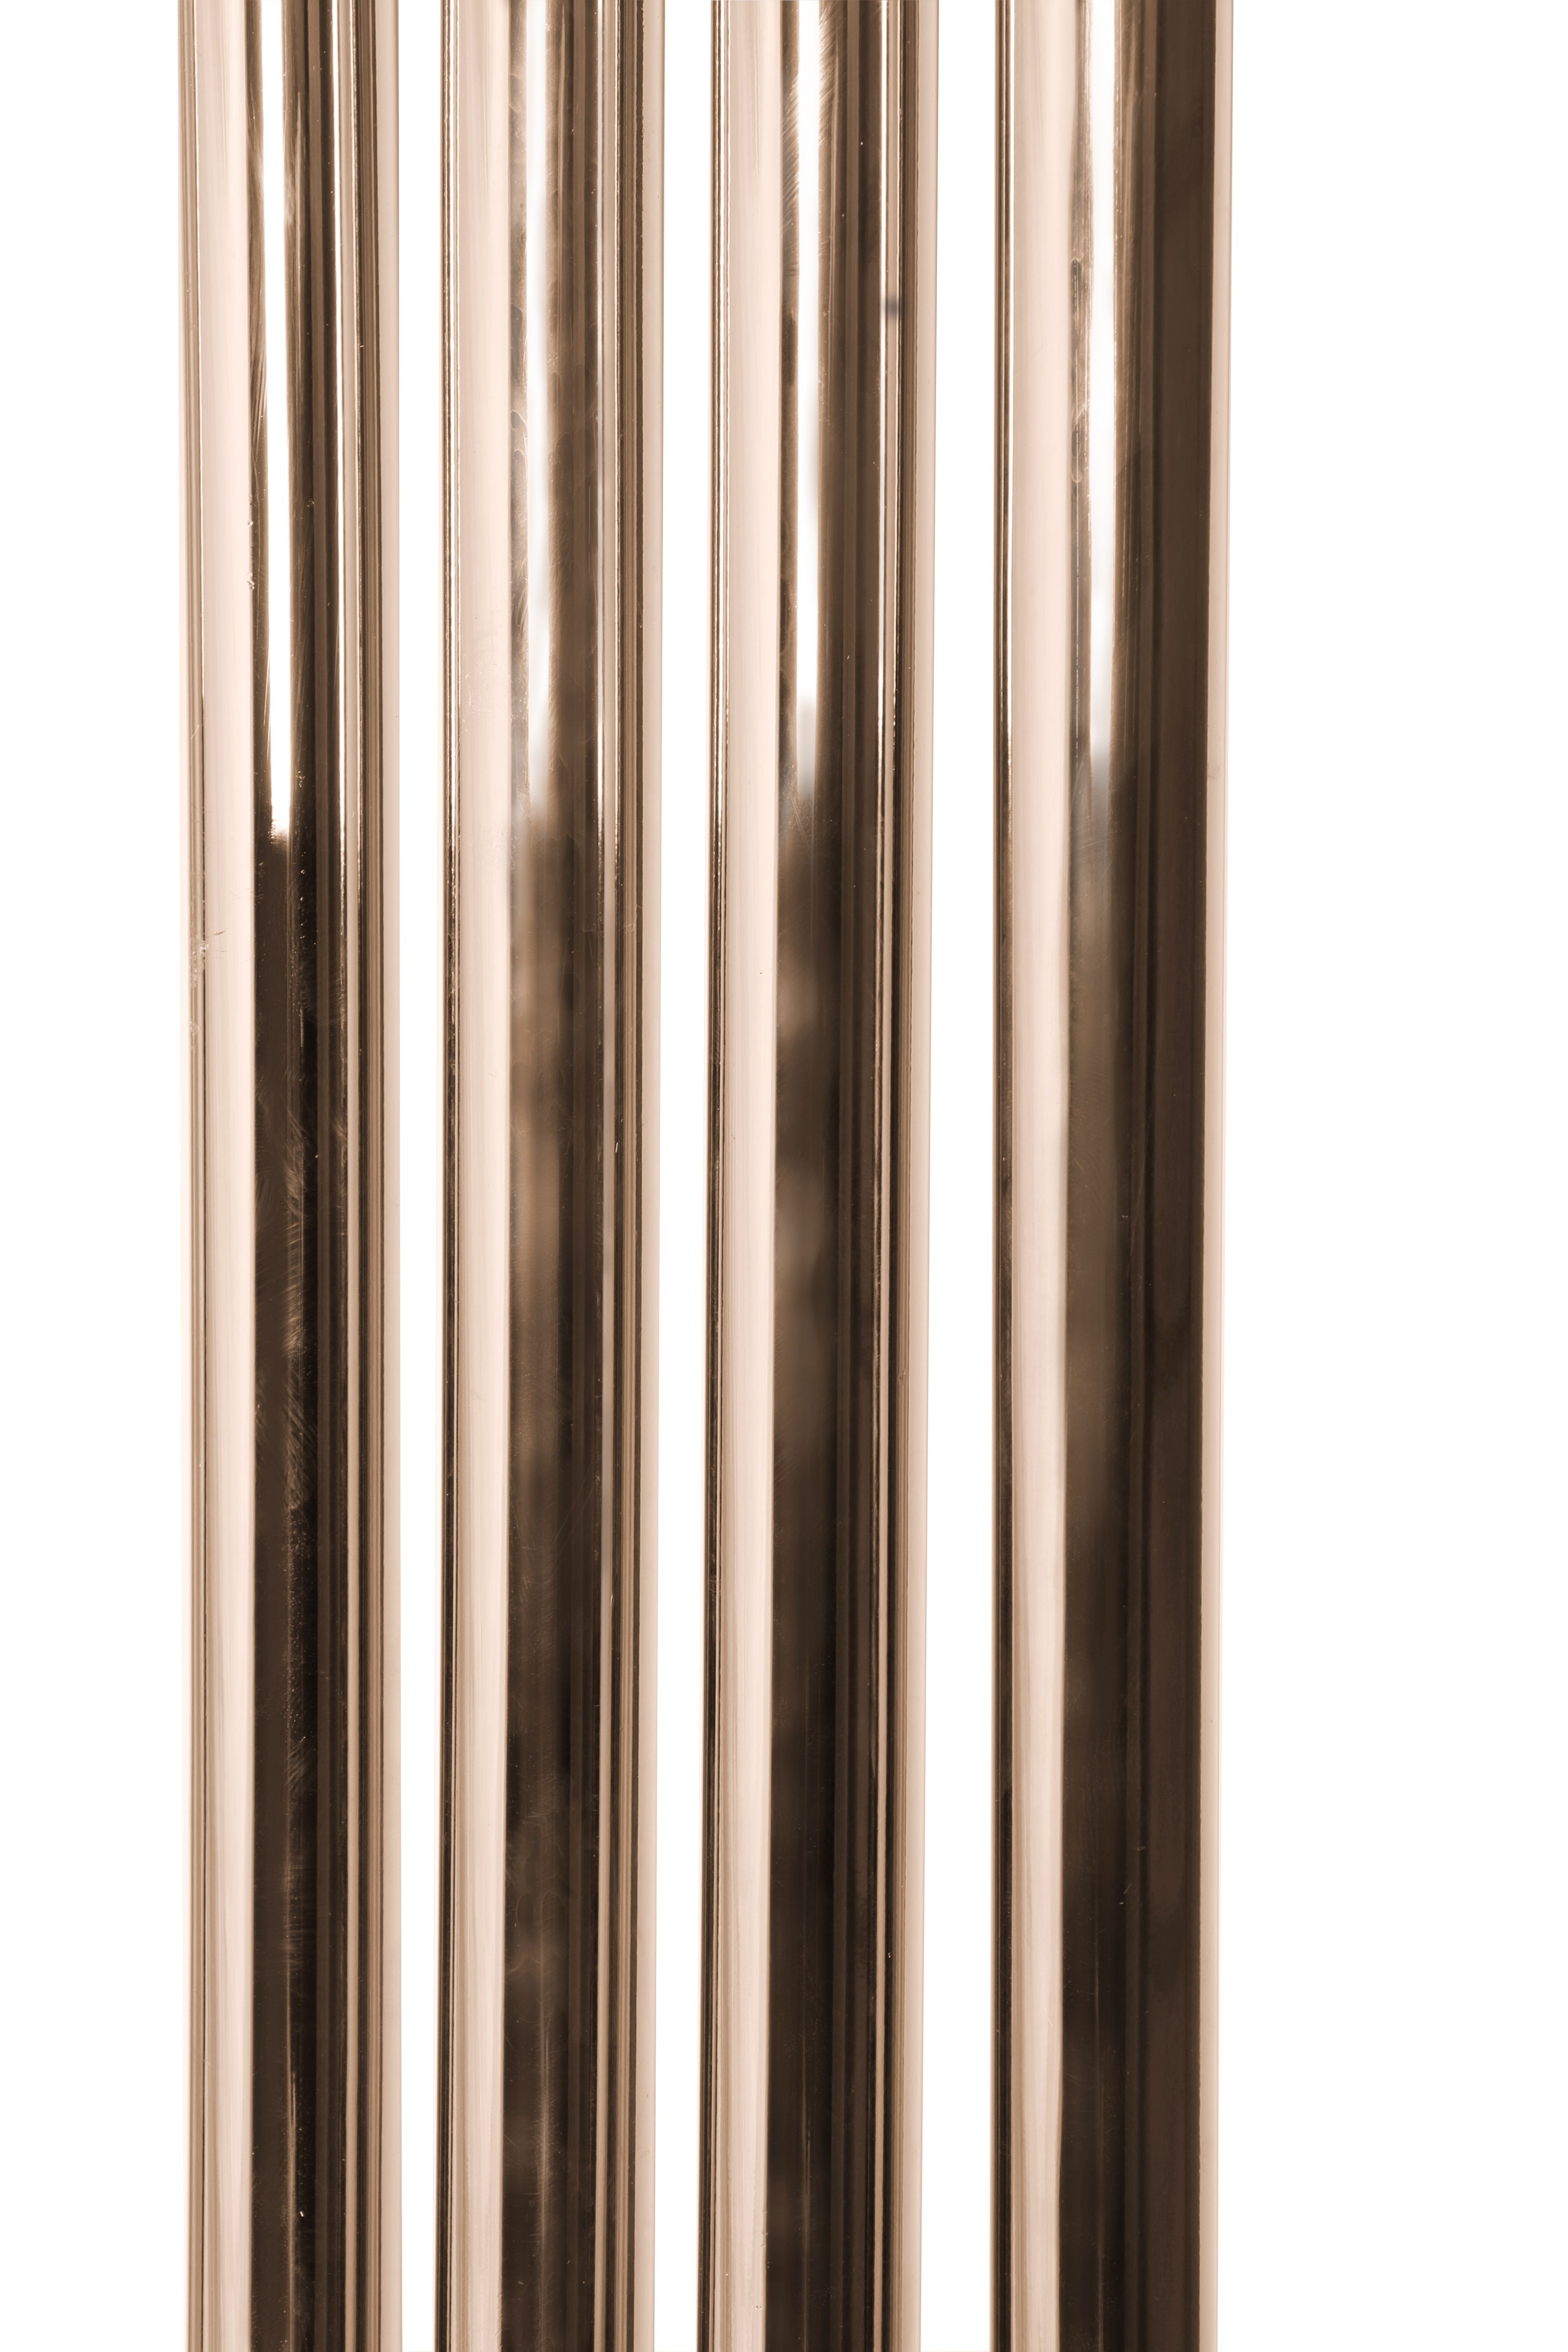 Bright ideas make a style statement with this modern floor lamp bright ideas make a style statement with this modern floor lamp modernfloorlamps aloadofball Images